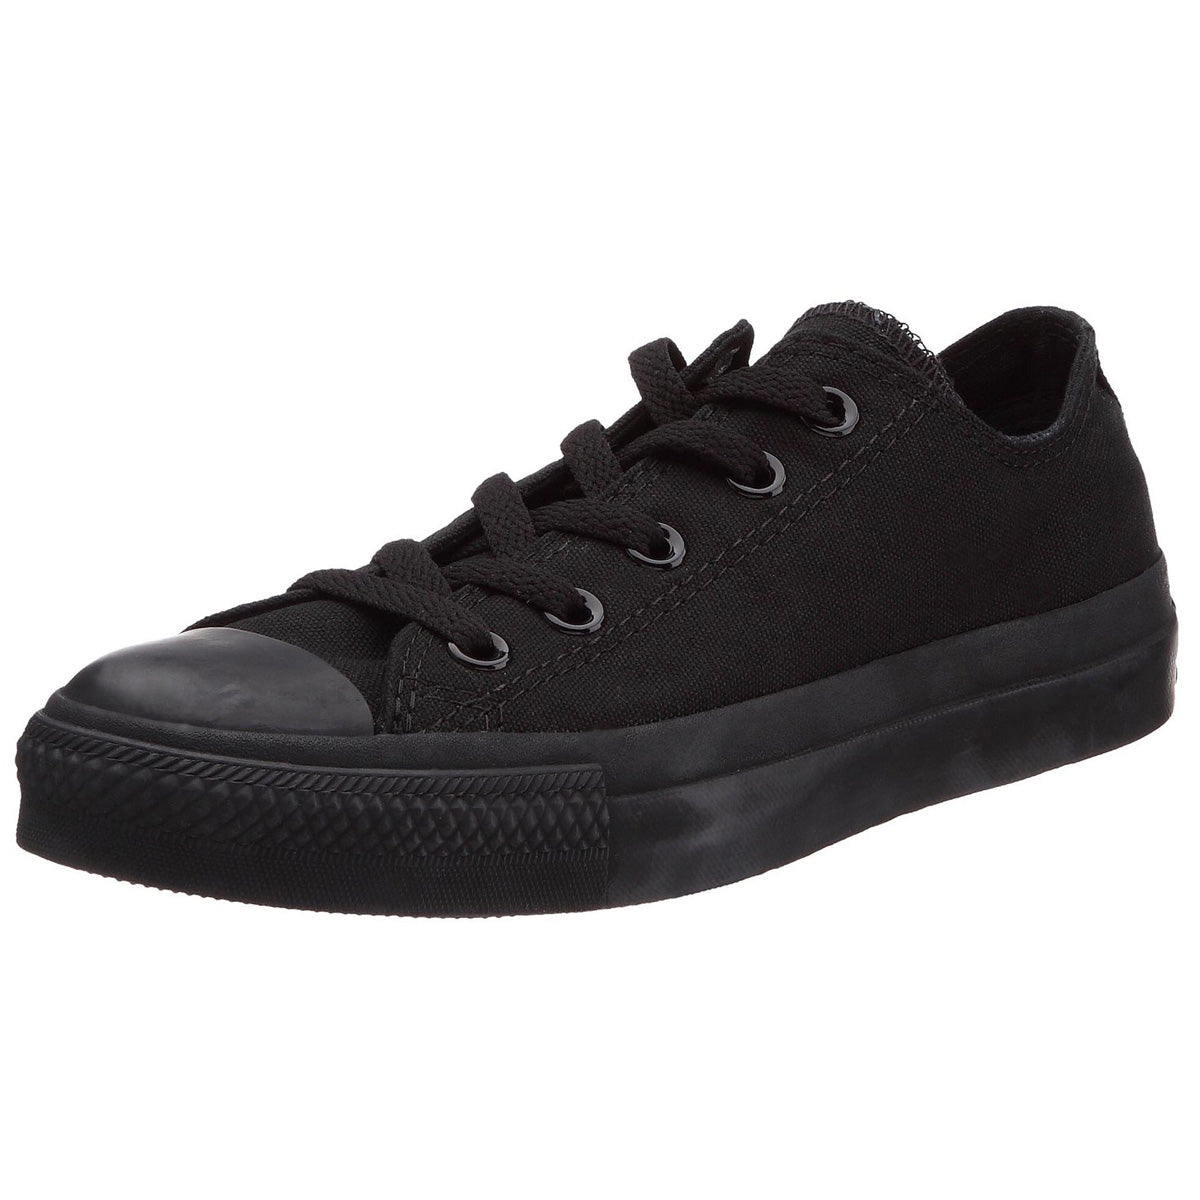 5ded8351f9a9 Converse Unisex Chuck Taylor All Star Sneakers Mono Black – ValueMaxx